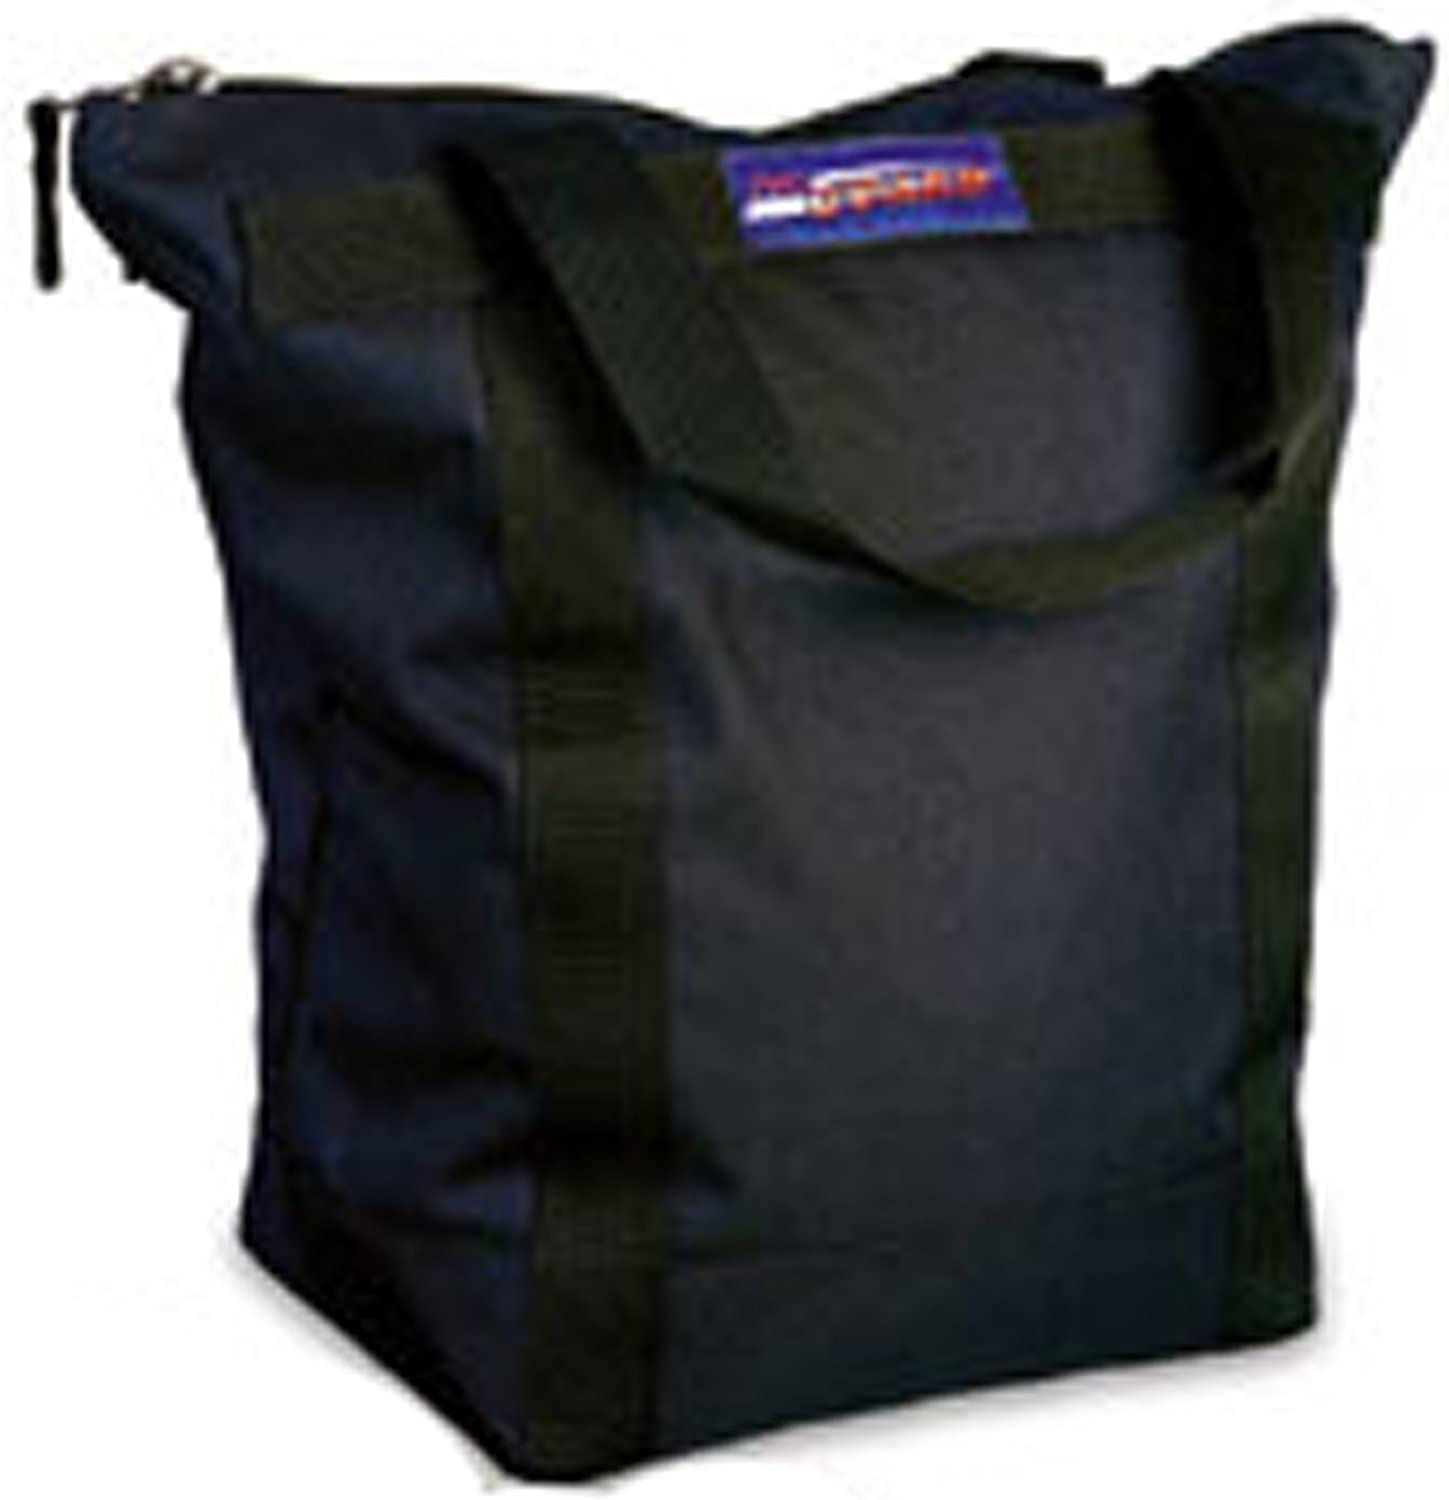 Proguard Hockey Puck Bag | Can Hold 65 Pucks or Balls | Additional Compartment for Personal Items | Black : Sports & Outdoors